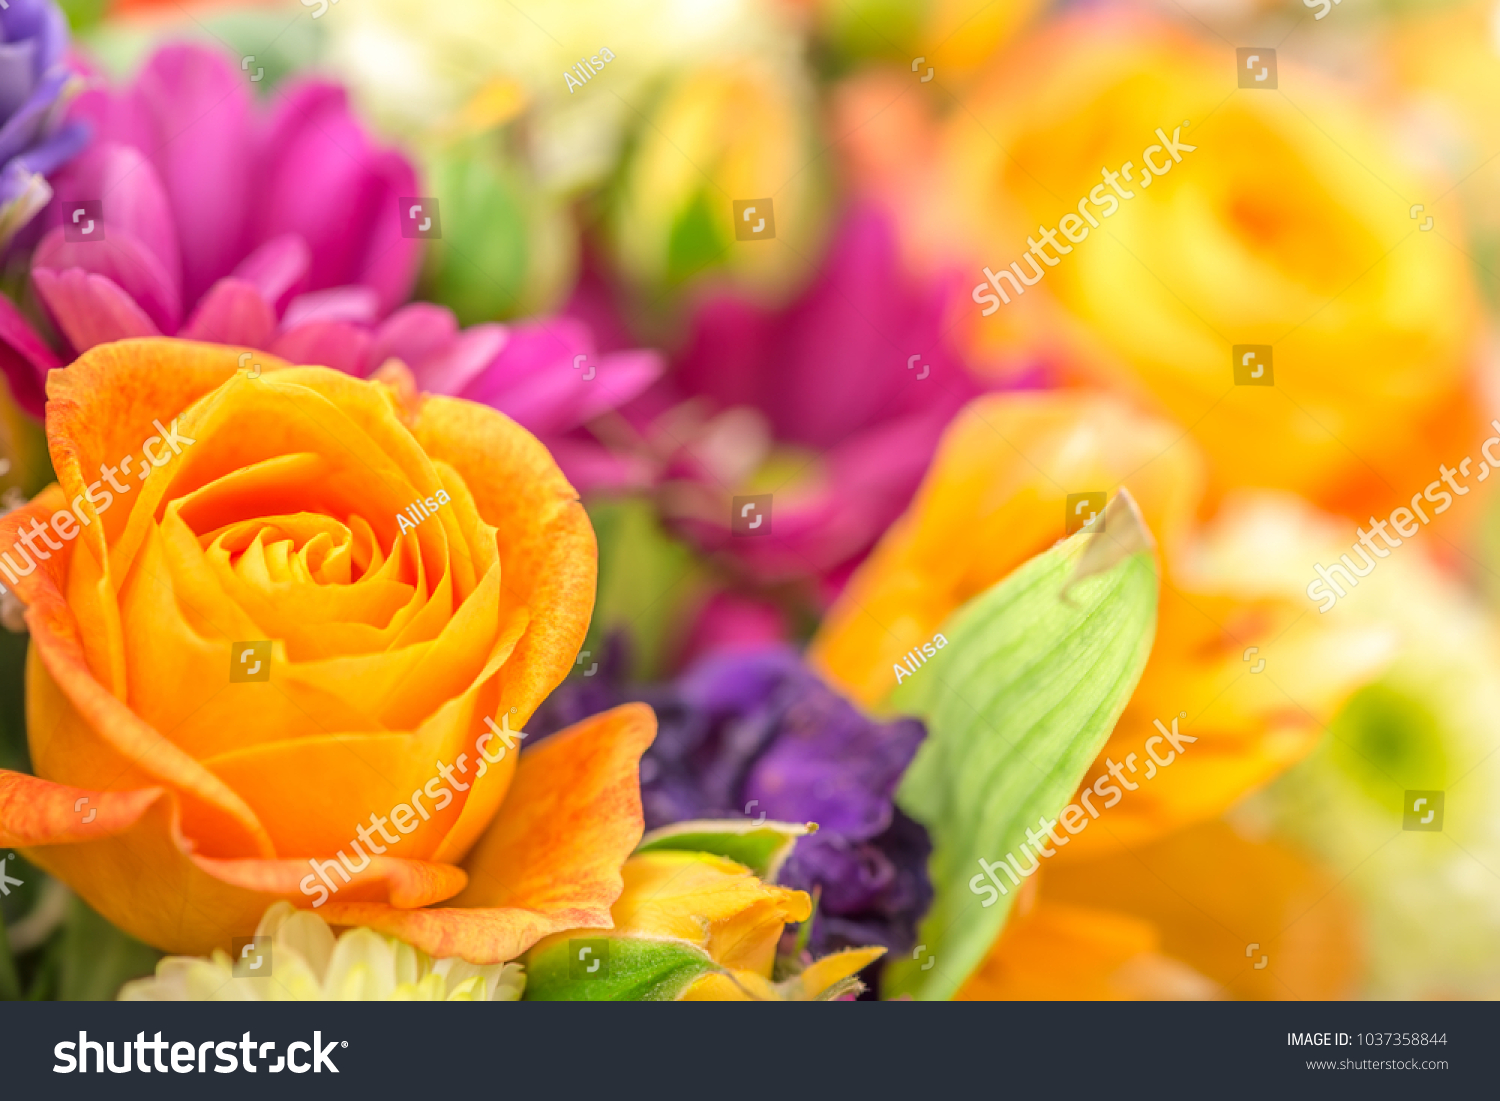 Beautiful flowers bouquet yellow rose greeting stock photo edit now beautiful flowers bouquet with yellow rose greeting card concept of 8 march day izmirmasajfo